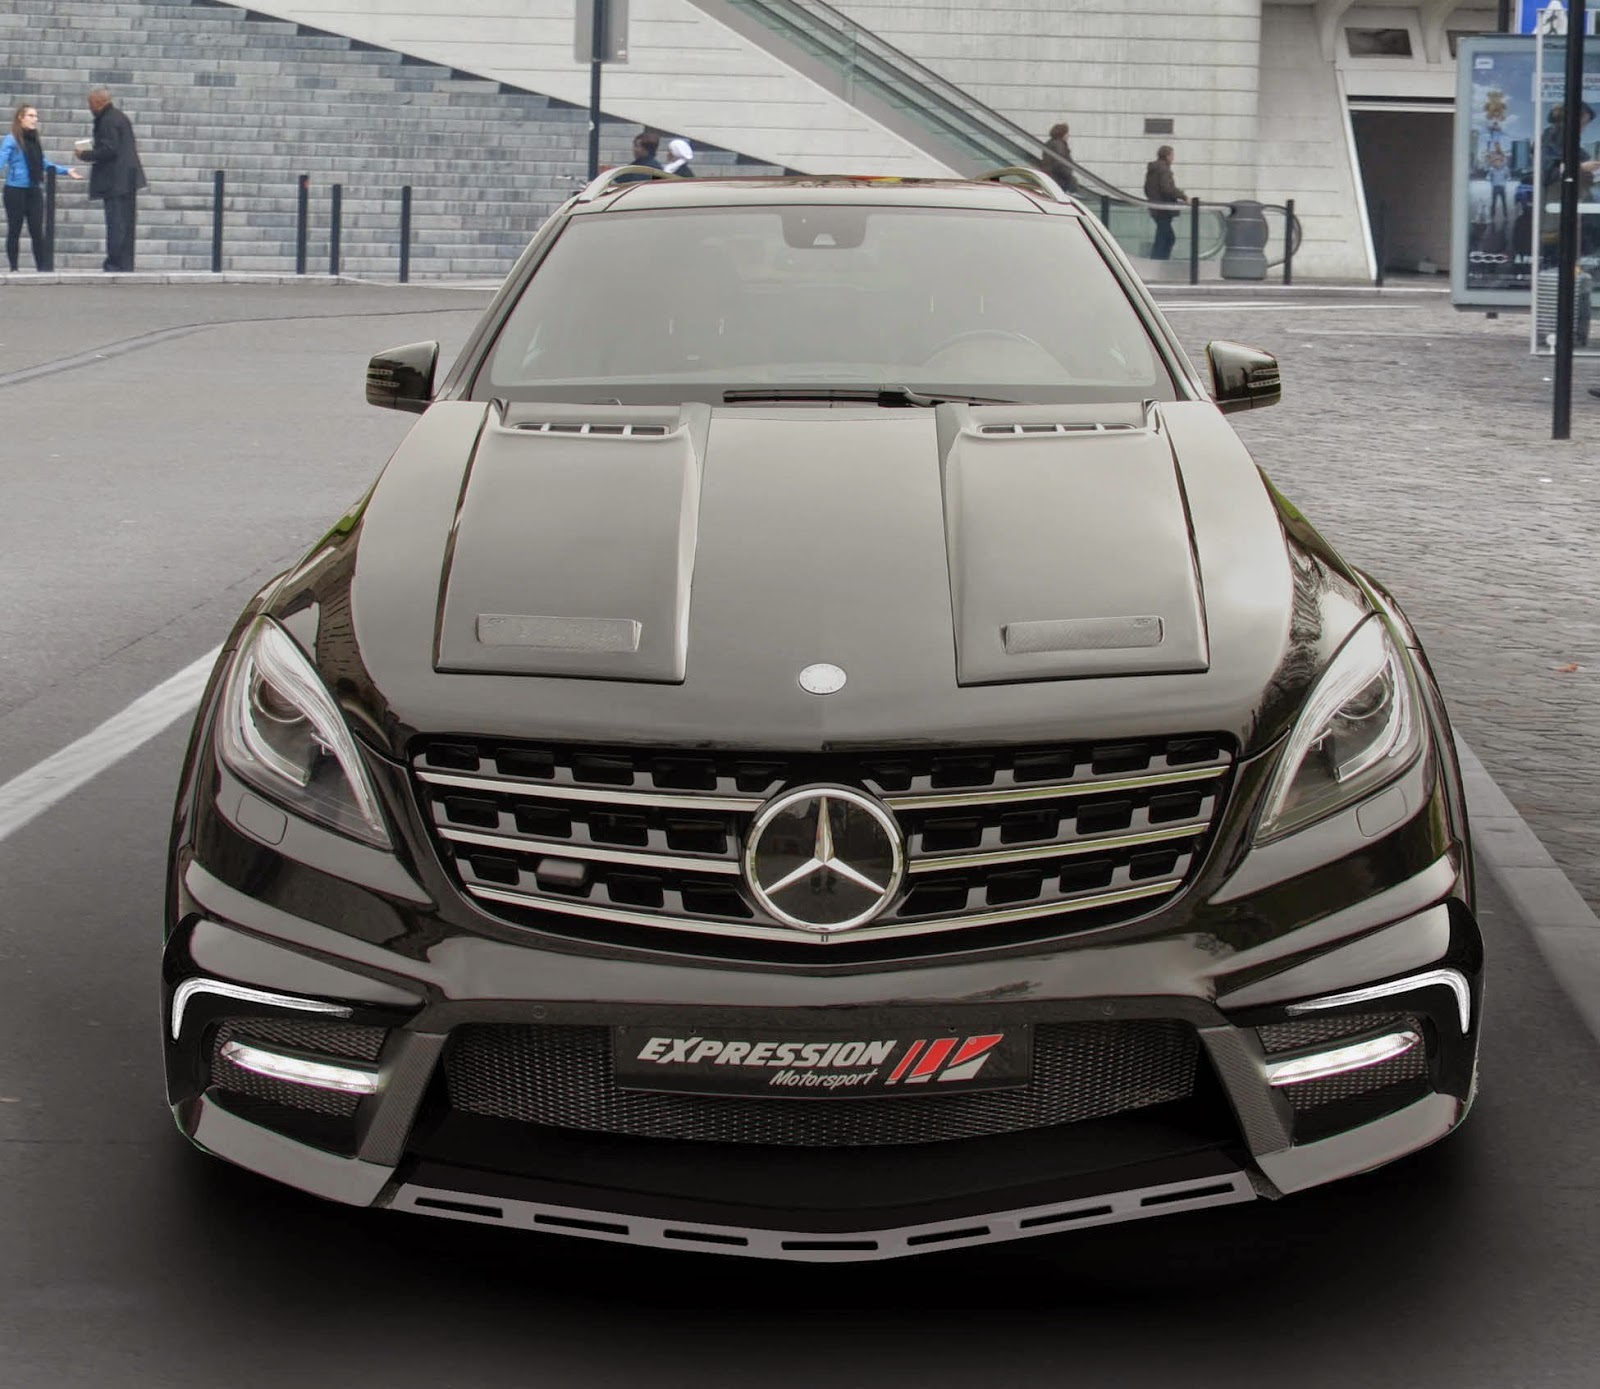 Supercars show mercedes benz ml w166 by expression for Mercedes benz ml accessories